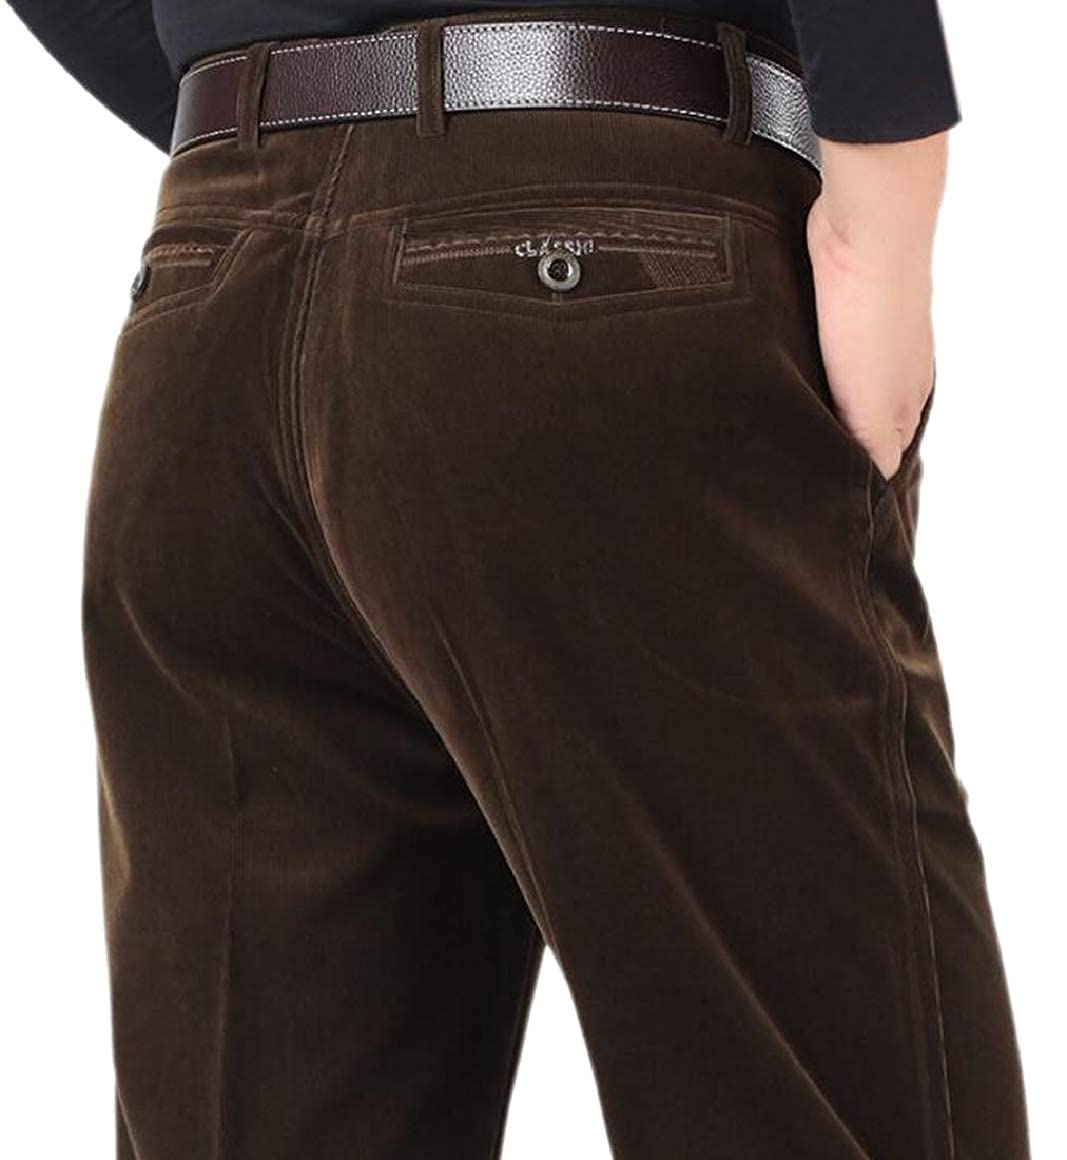 Ptyhk RG Men Corduroy Stretchy Hi Waist Casual Straight Casual Pants